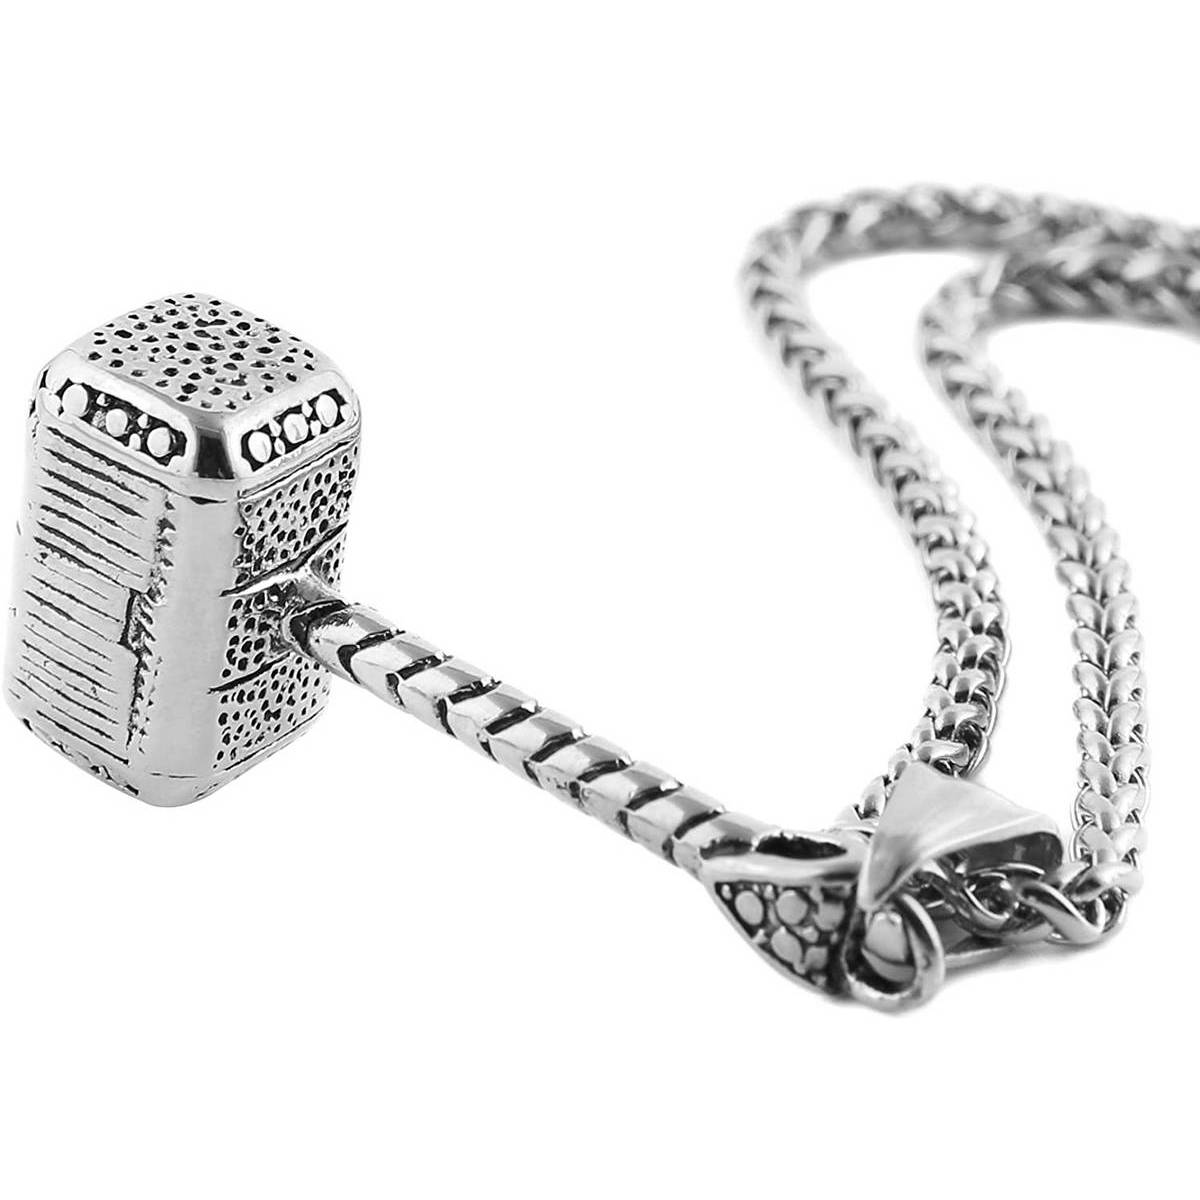 Neck Chain Fashion Neck Wear for Boys and Girls Rough and Casual Style  Fashion Jewellery For Girls and Boys | Thor's Hammer Style Fashion Pendant and Necklace | Fashion Jewelry Stick Hollow Girl Long Link Chain Neckless for Girls and Women & Boys and Men